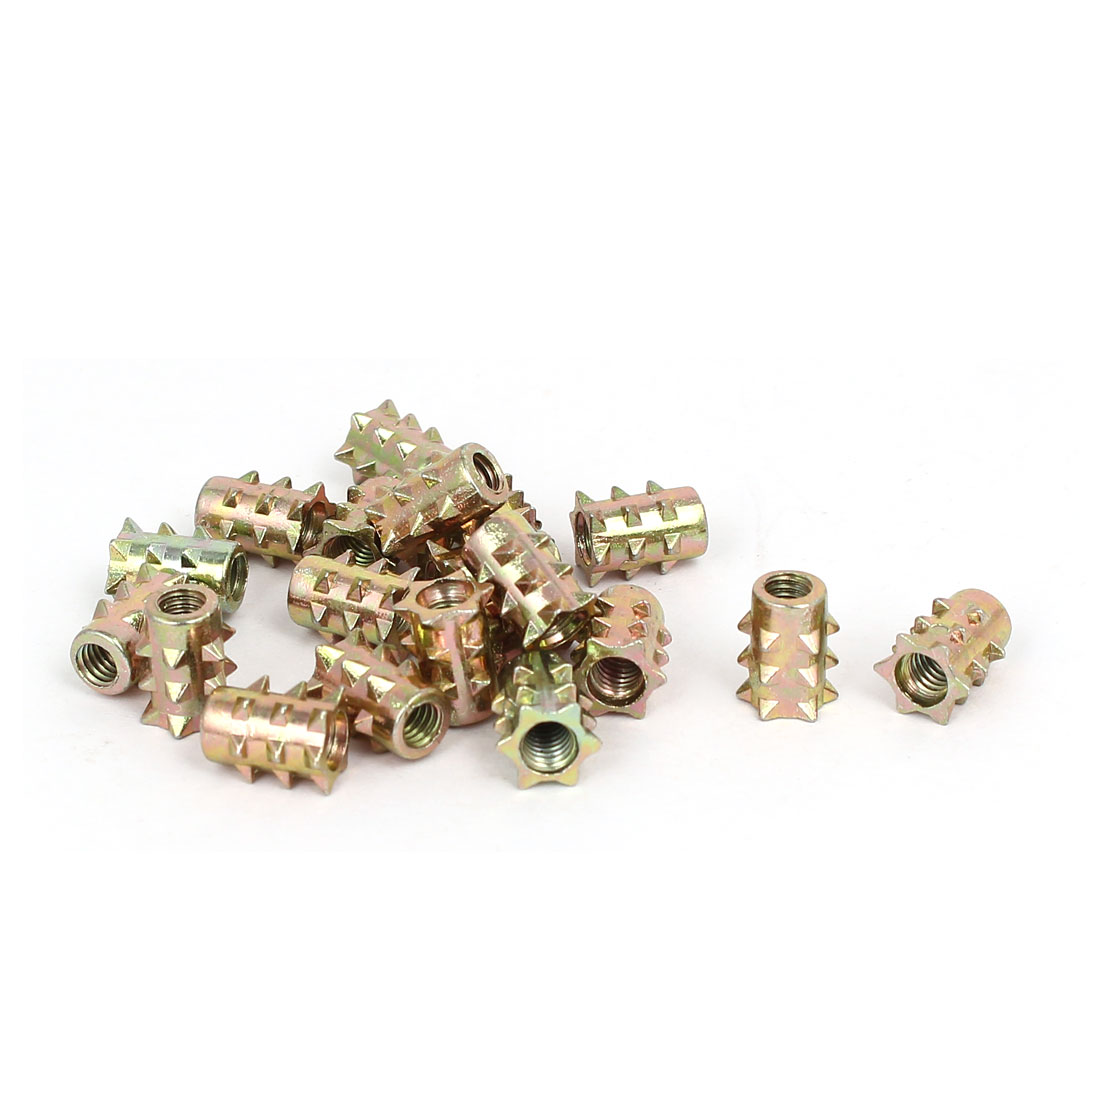 M4 x 10mm Star Head Insert Screws E-Nuts Furniture Fittings Bronze Tone 20pcs